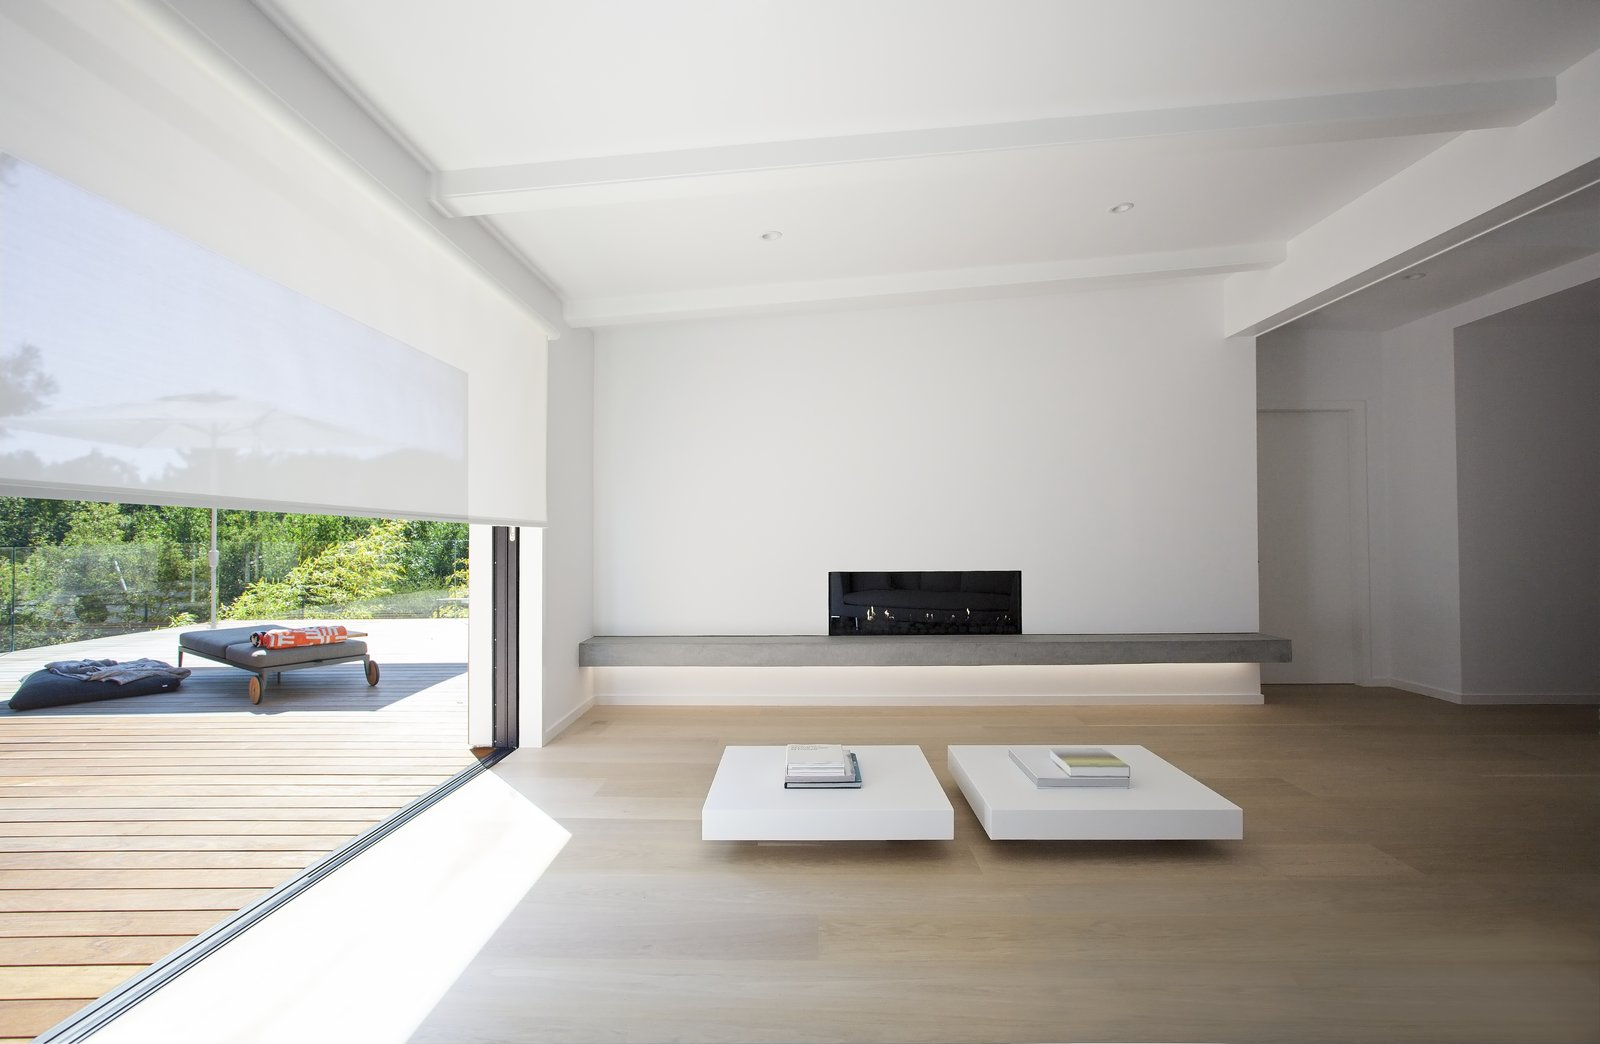 Huge header beams and thickened walls allow for a generous opening between the living room and deck, with doors that recess into the wall cavity and a seamless meeting between the indoor floor and the exterior decking.